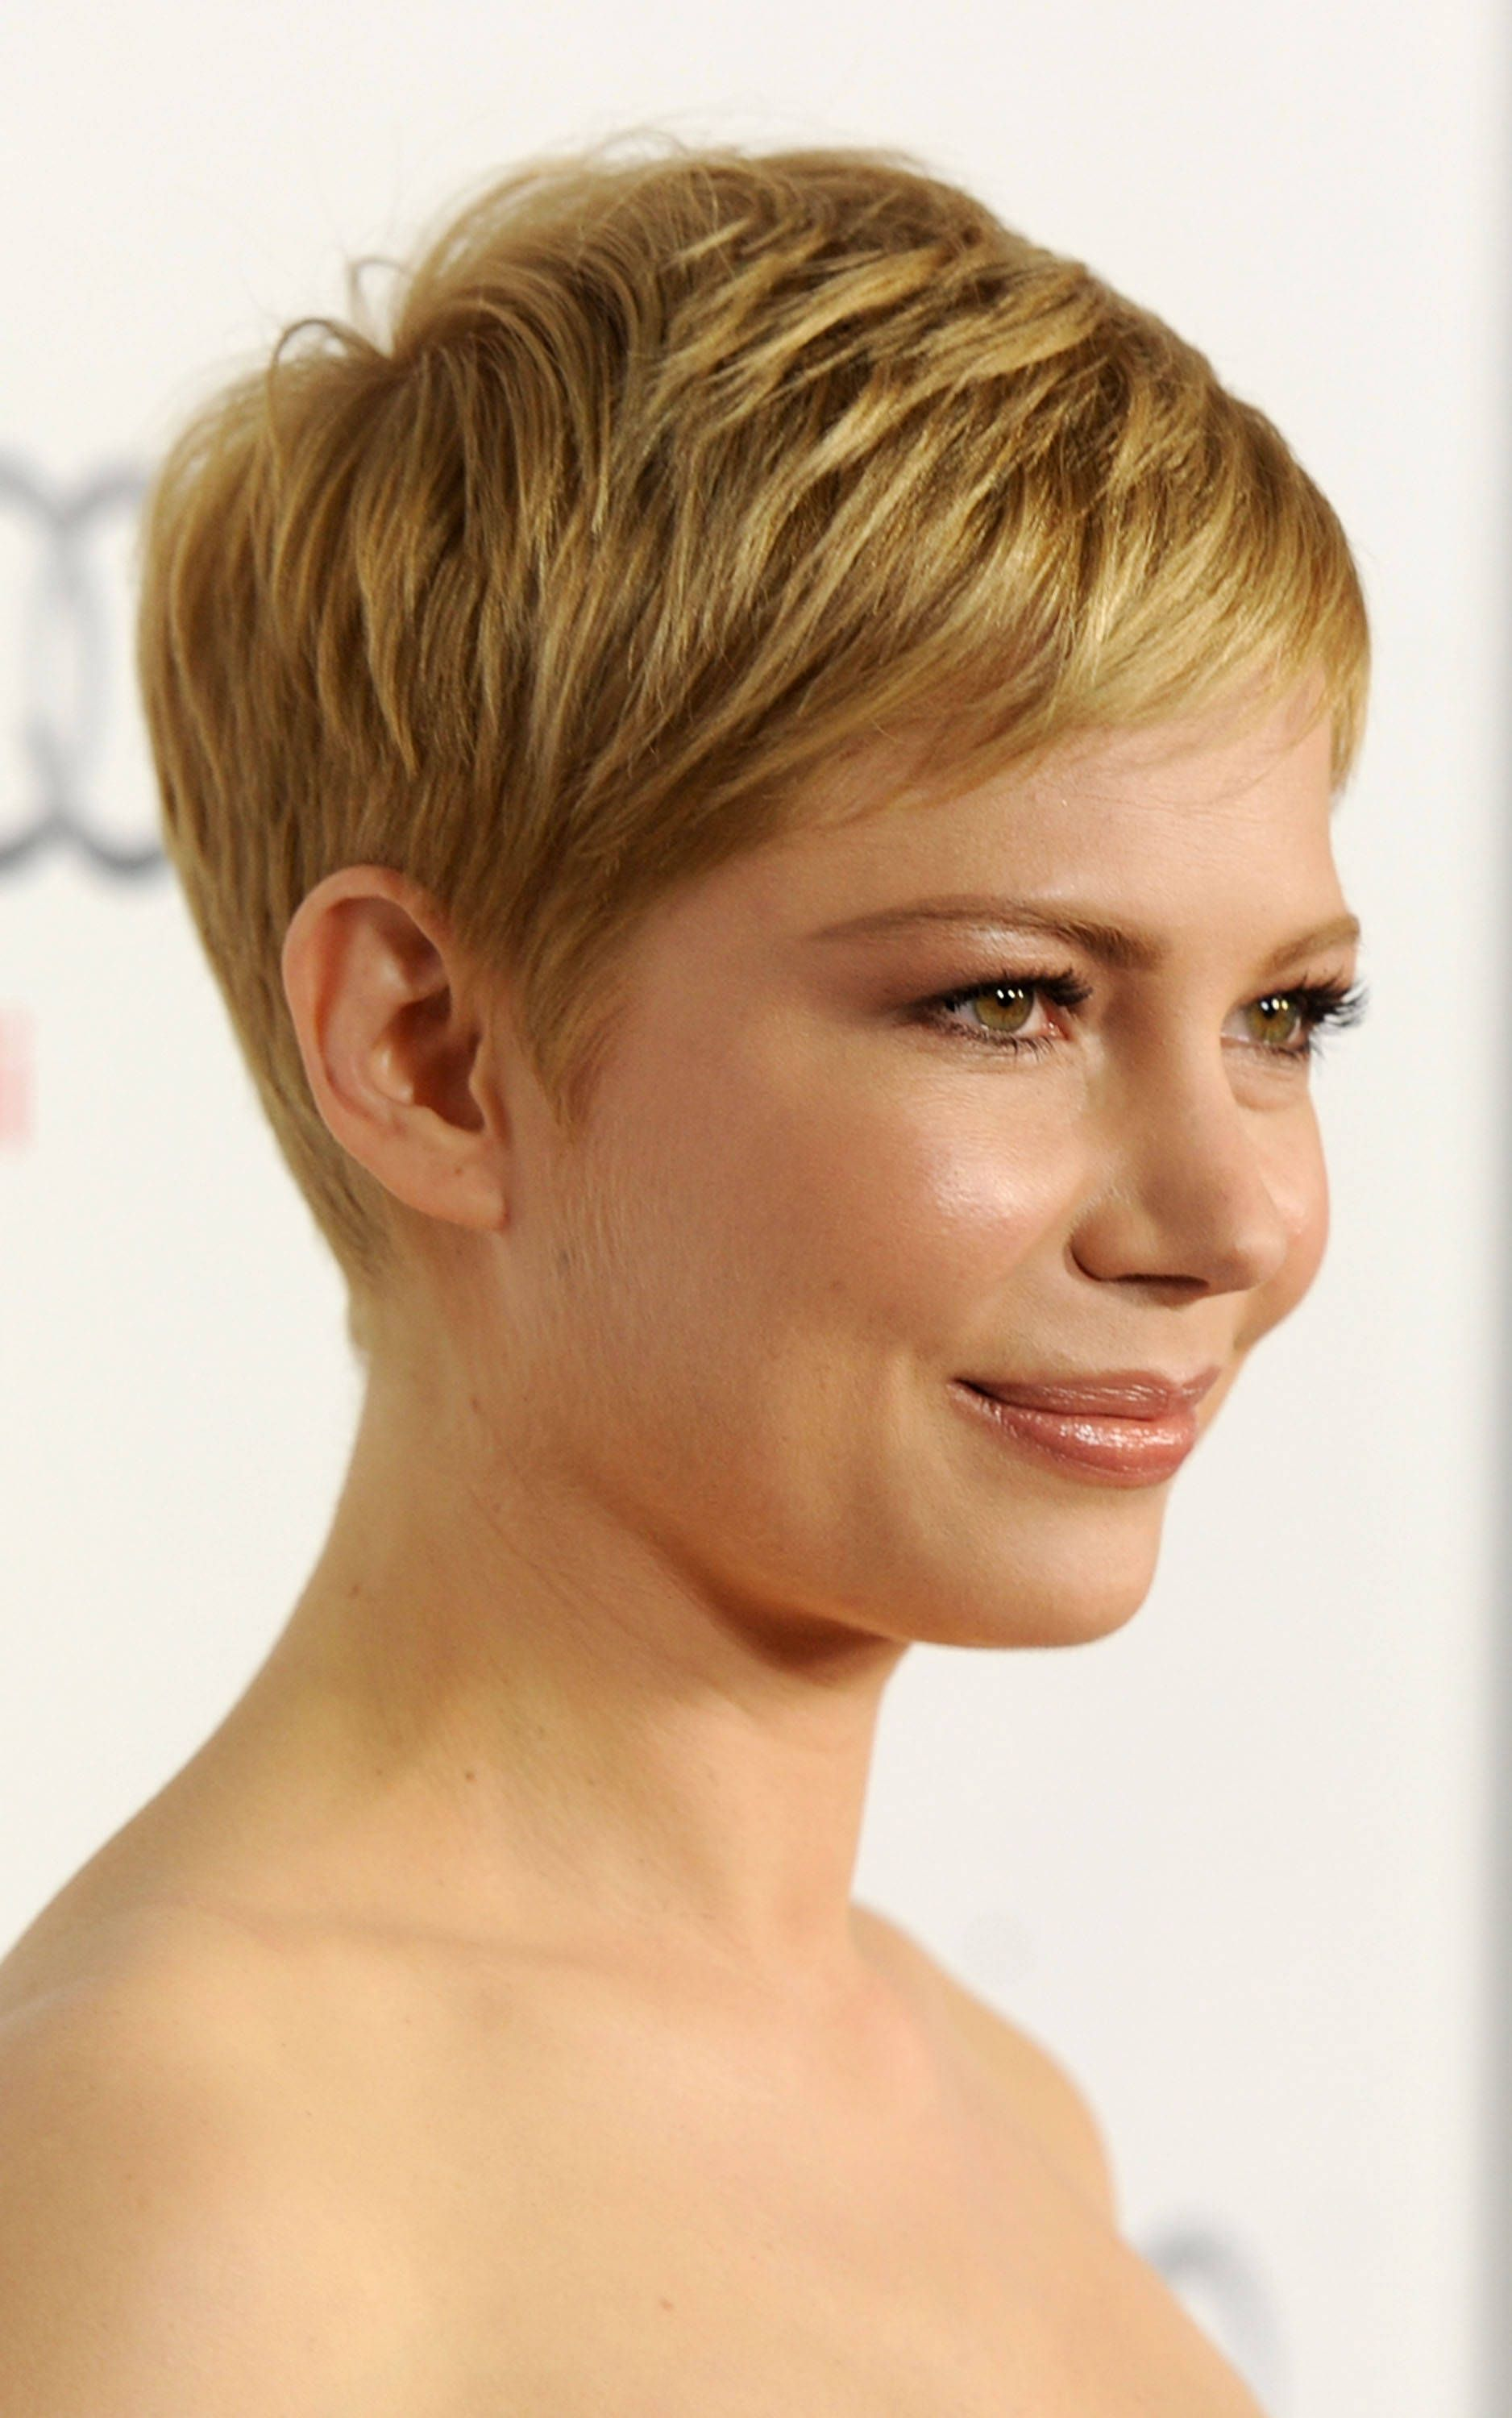 trendy pixie hairstyles women short hair cuts michelle